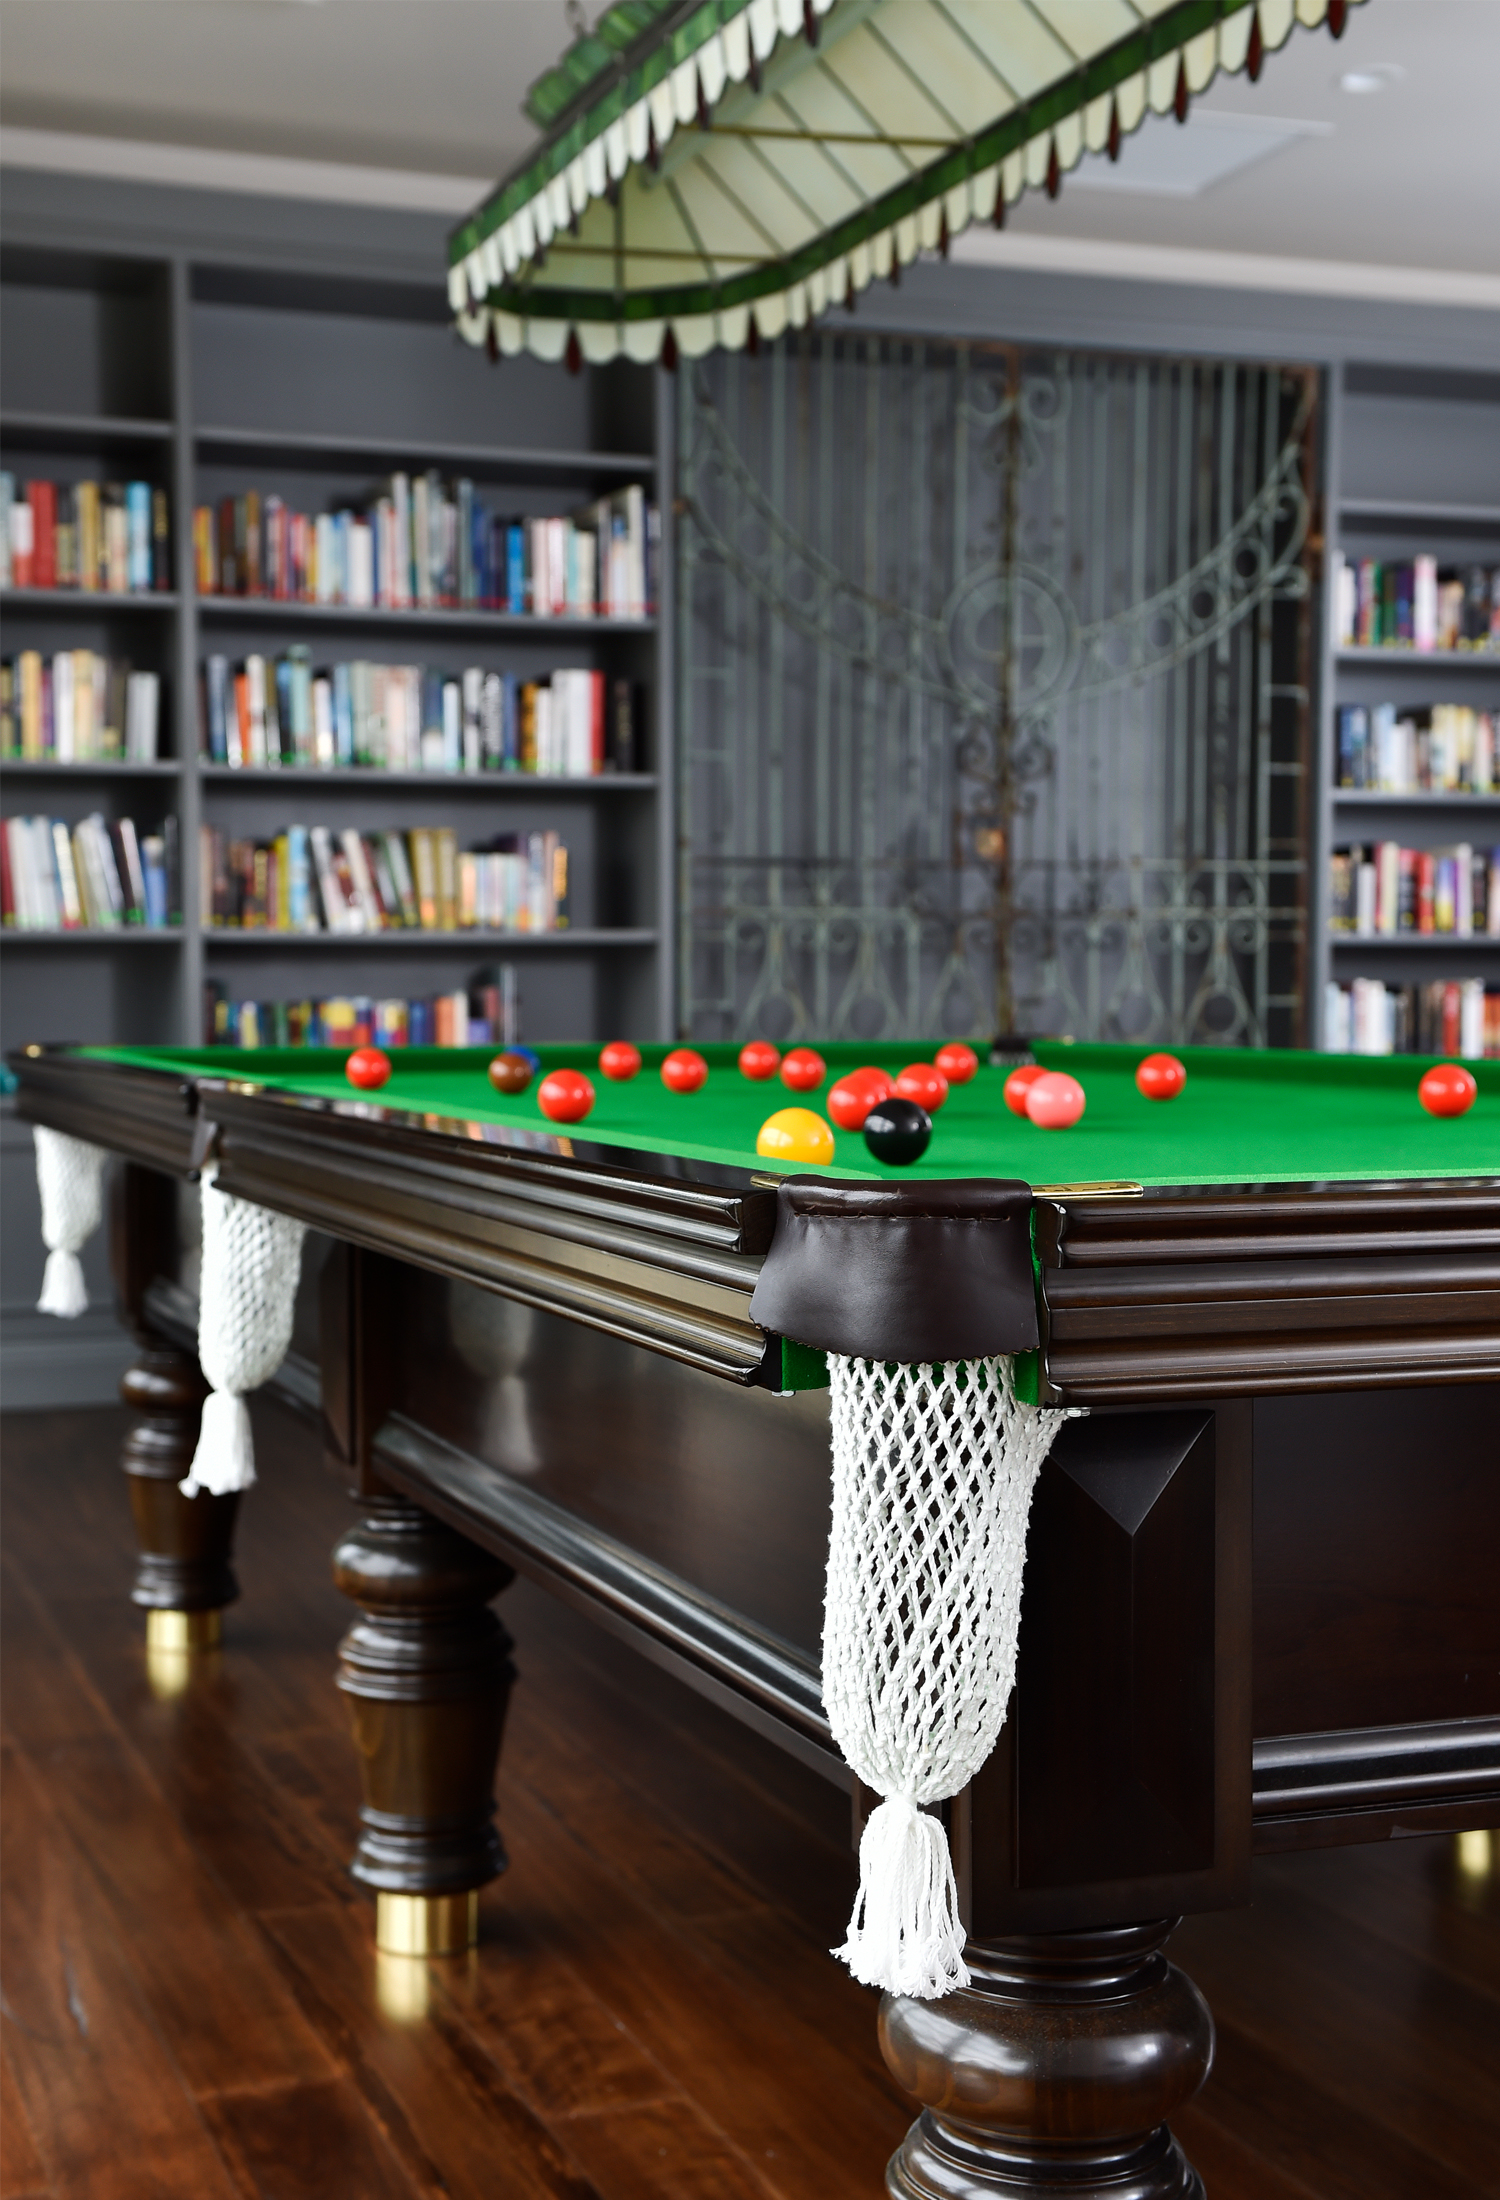 Billiards & Library - The library features its own fireplace with beautifully fitted bookshelves complete with some of your favourite titles to read. Snug lounges and arm chairs present the perfect opportunity for curling up with a great book and a cup of tea or glass of vino. The full sized American billiard table affords an ideal opportunity to challenge your new neighbour to a round of pool or brush up on your skills before taking part in a Wivenhoe Village pool tournament.